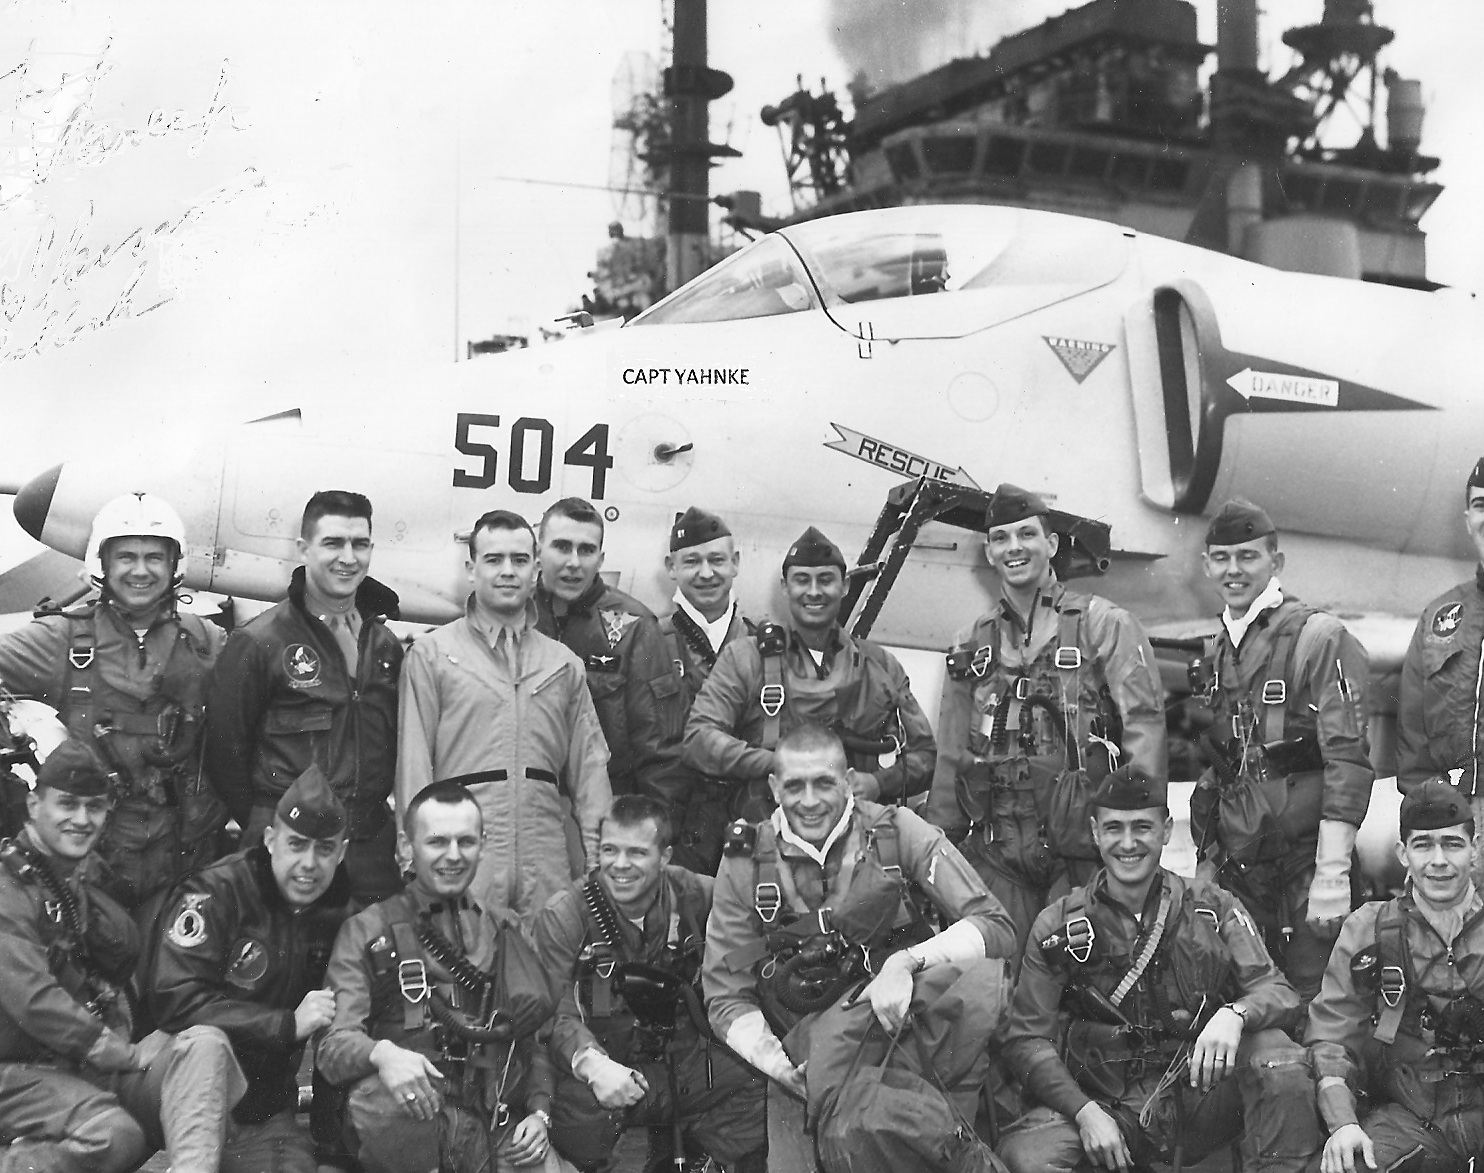 The pilots posing in front of an aircraft